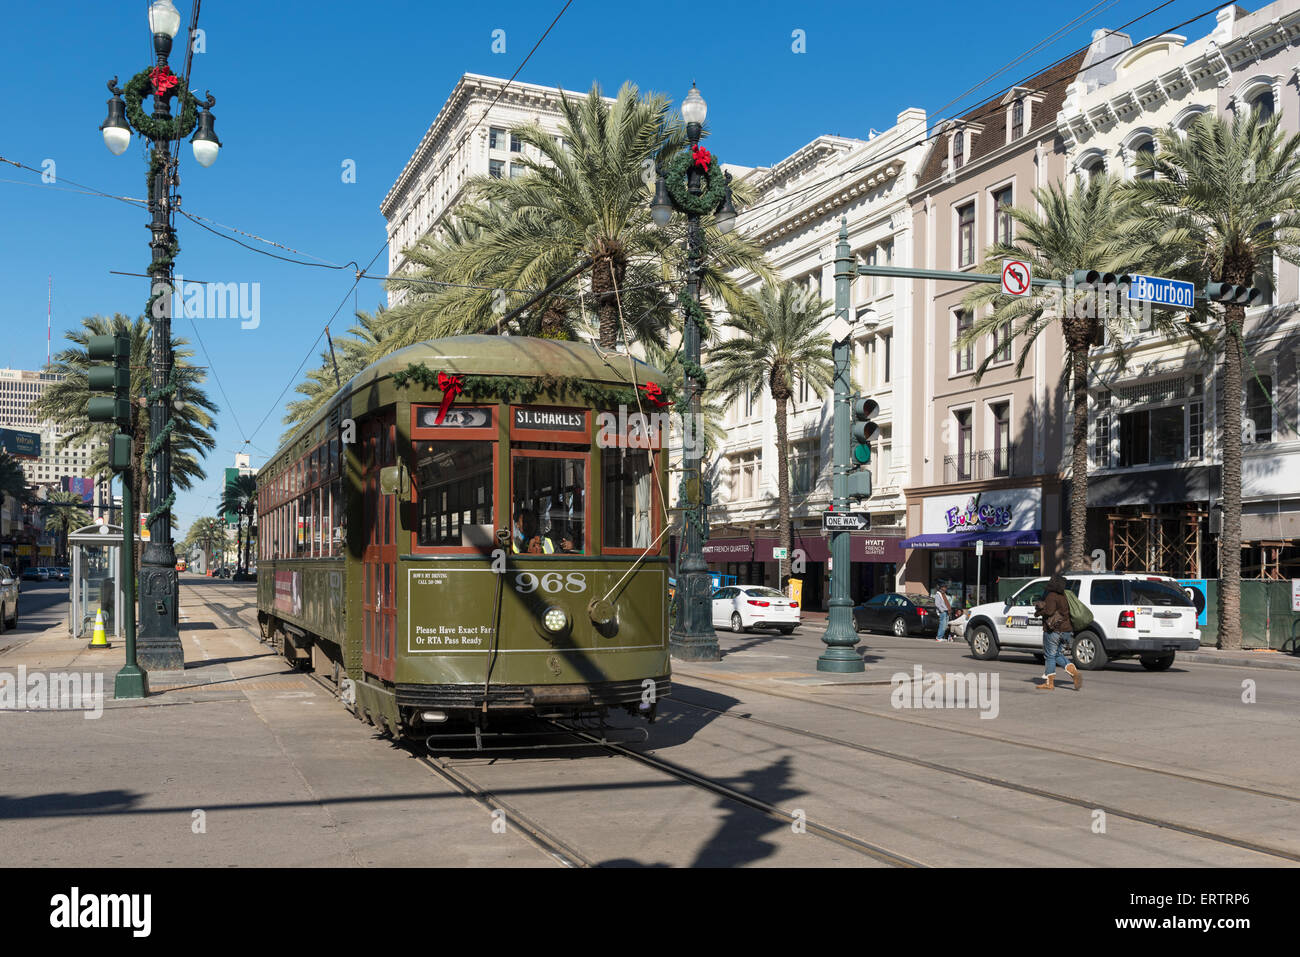 Streetcar tram on Canal Street, New Orleans French Quarter, Louisiana, USA - Stock Image